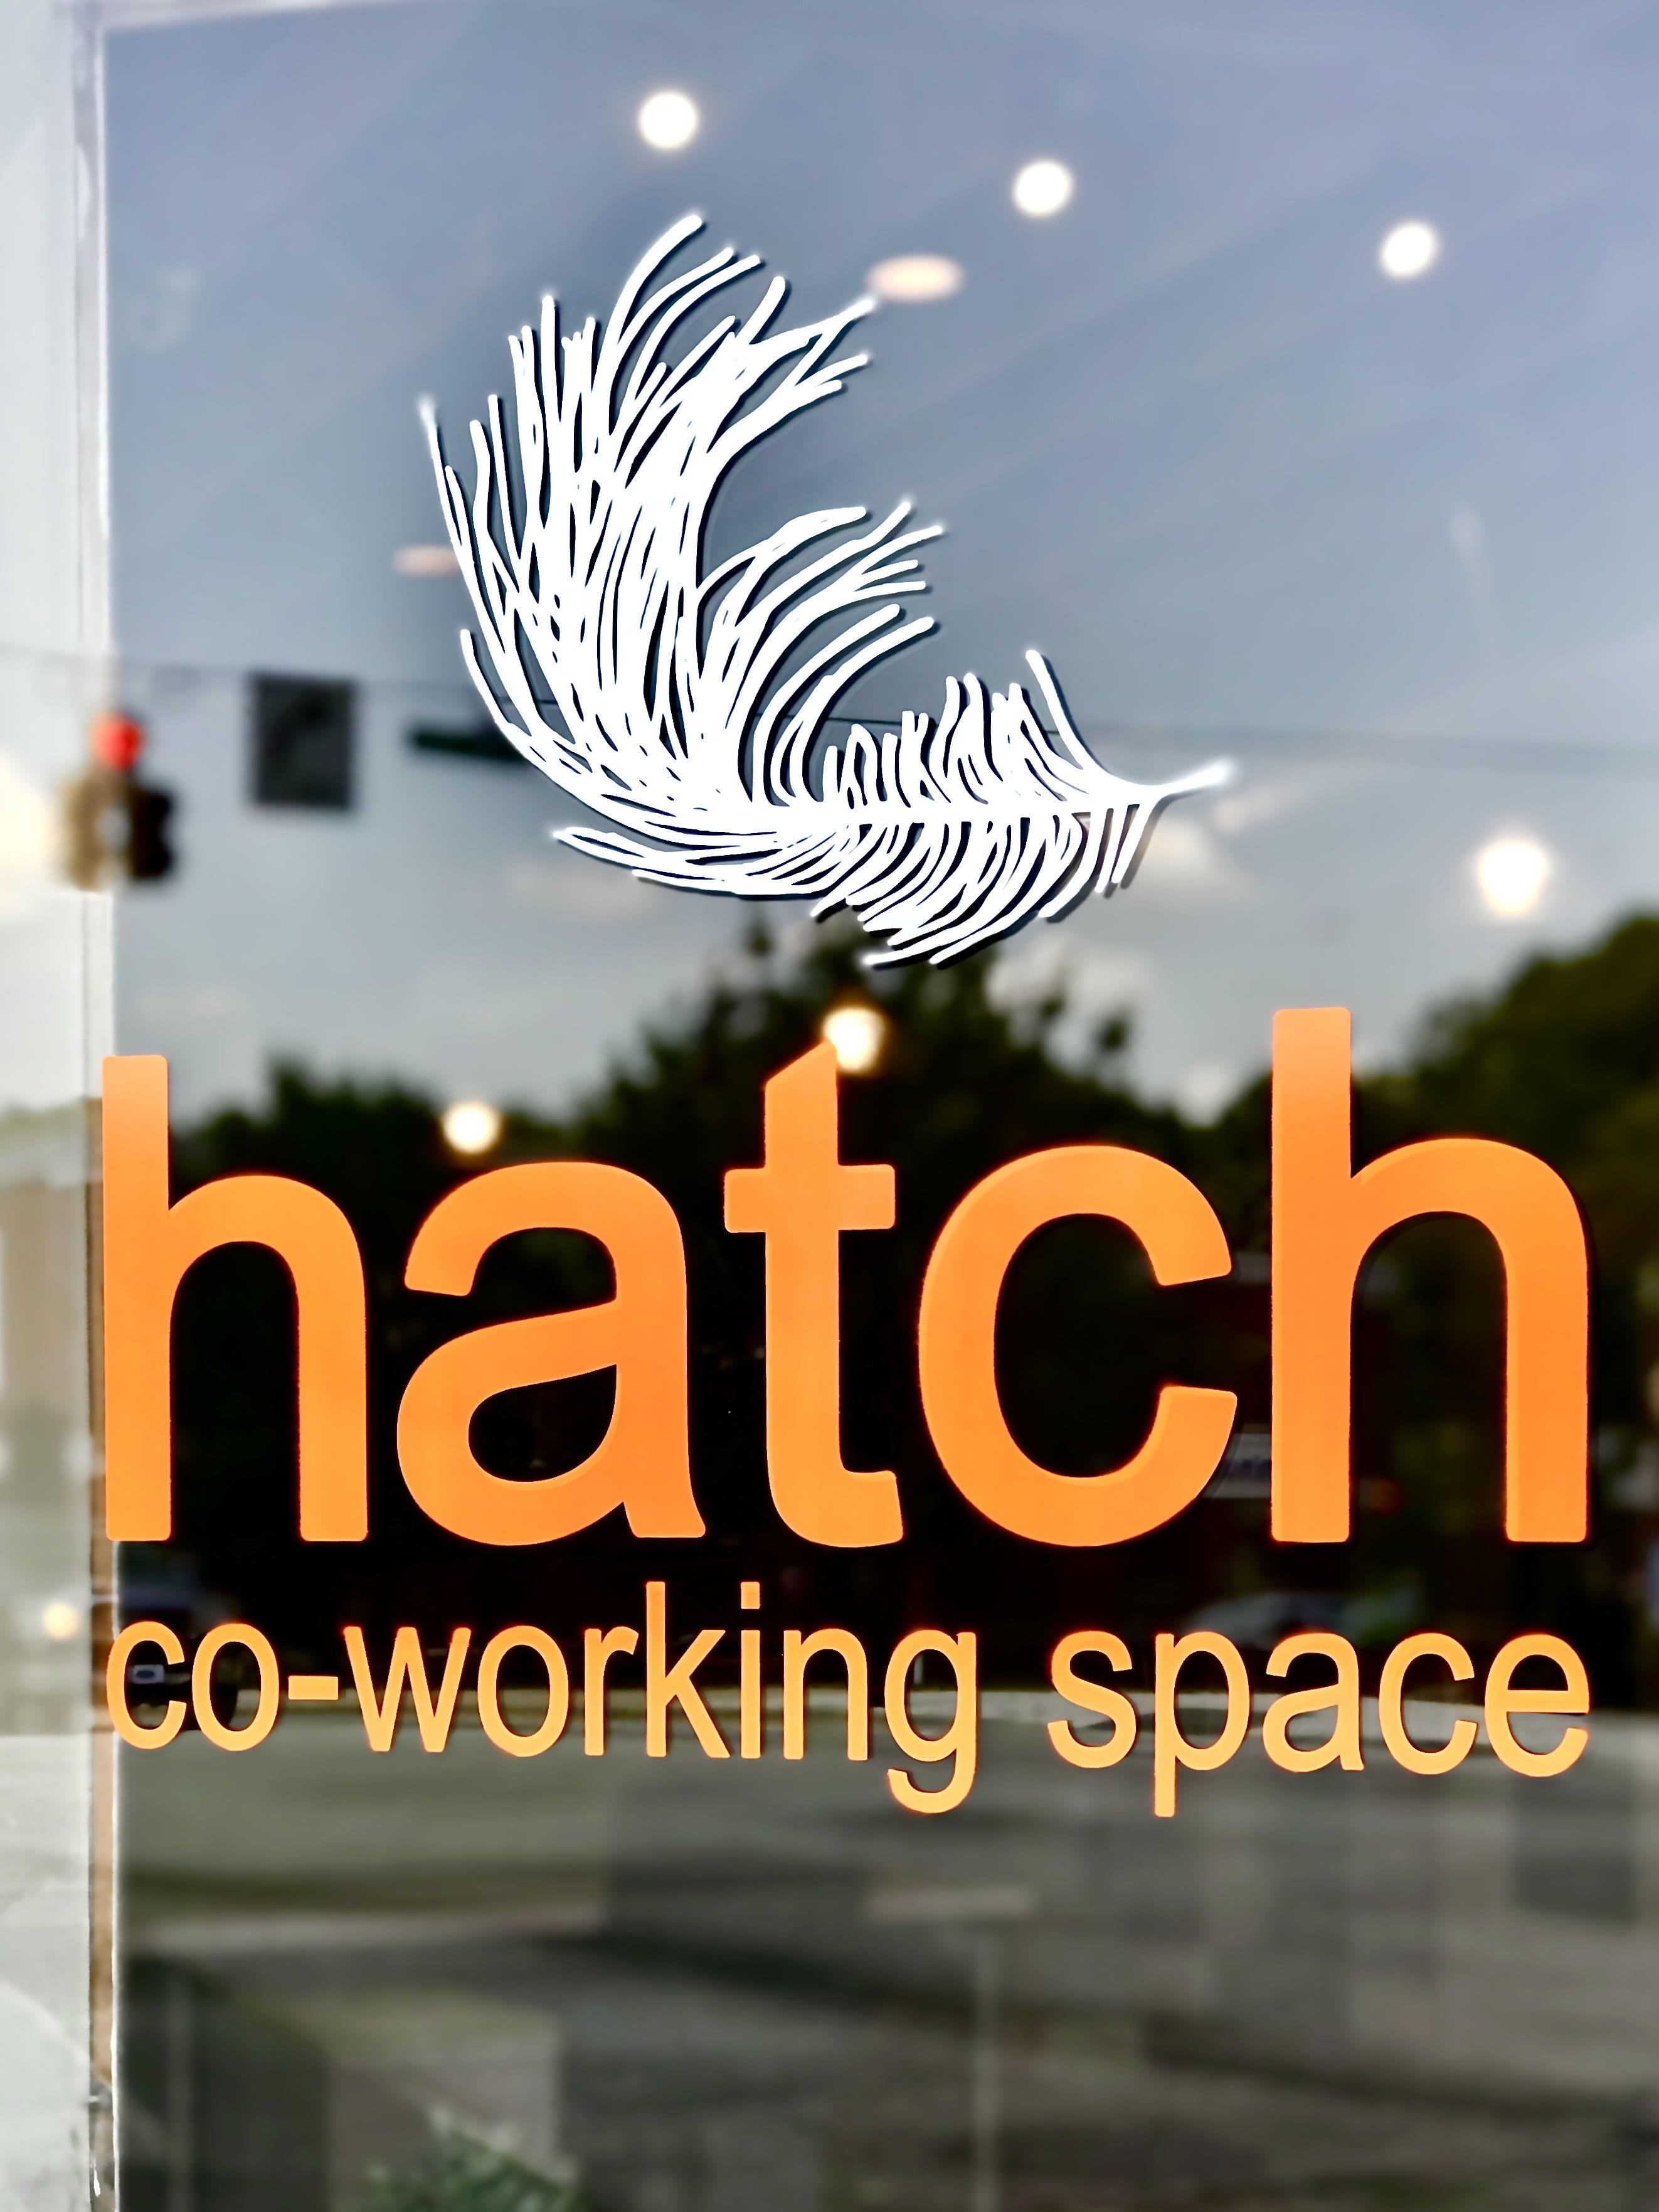 Hatch is one of the coolest coworking spaces around! The internet said so…